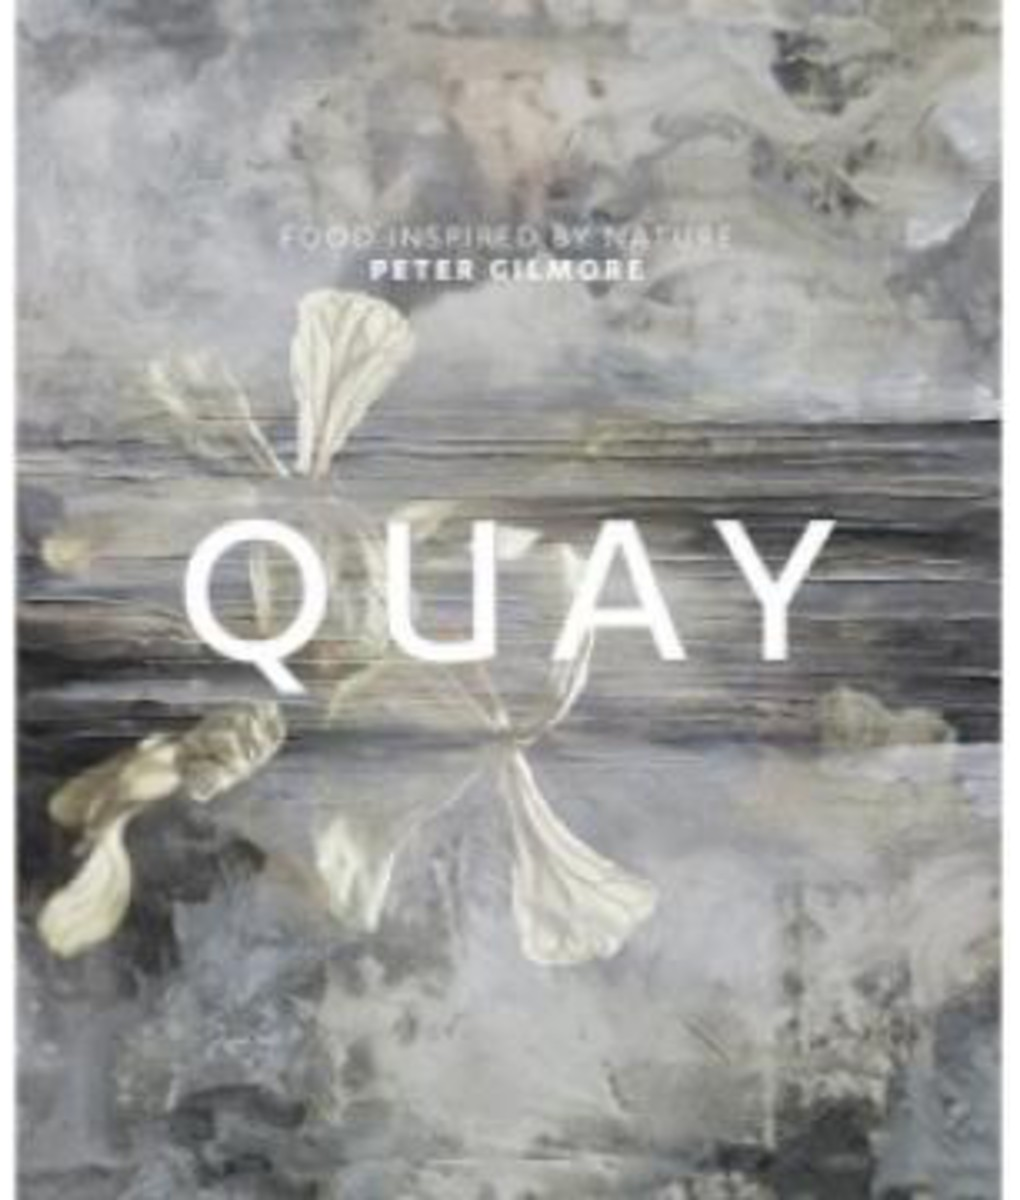 Quay: Food inspired by nature by Peter Gilmore